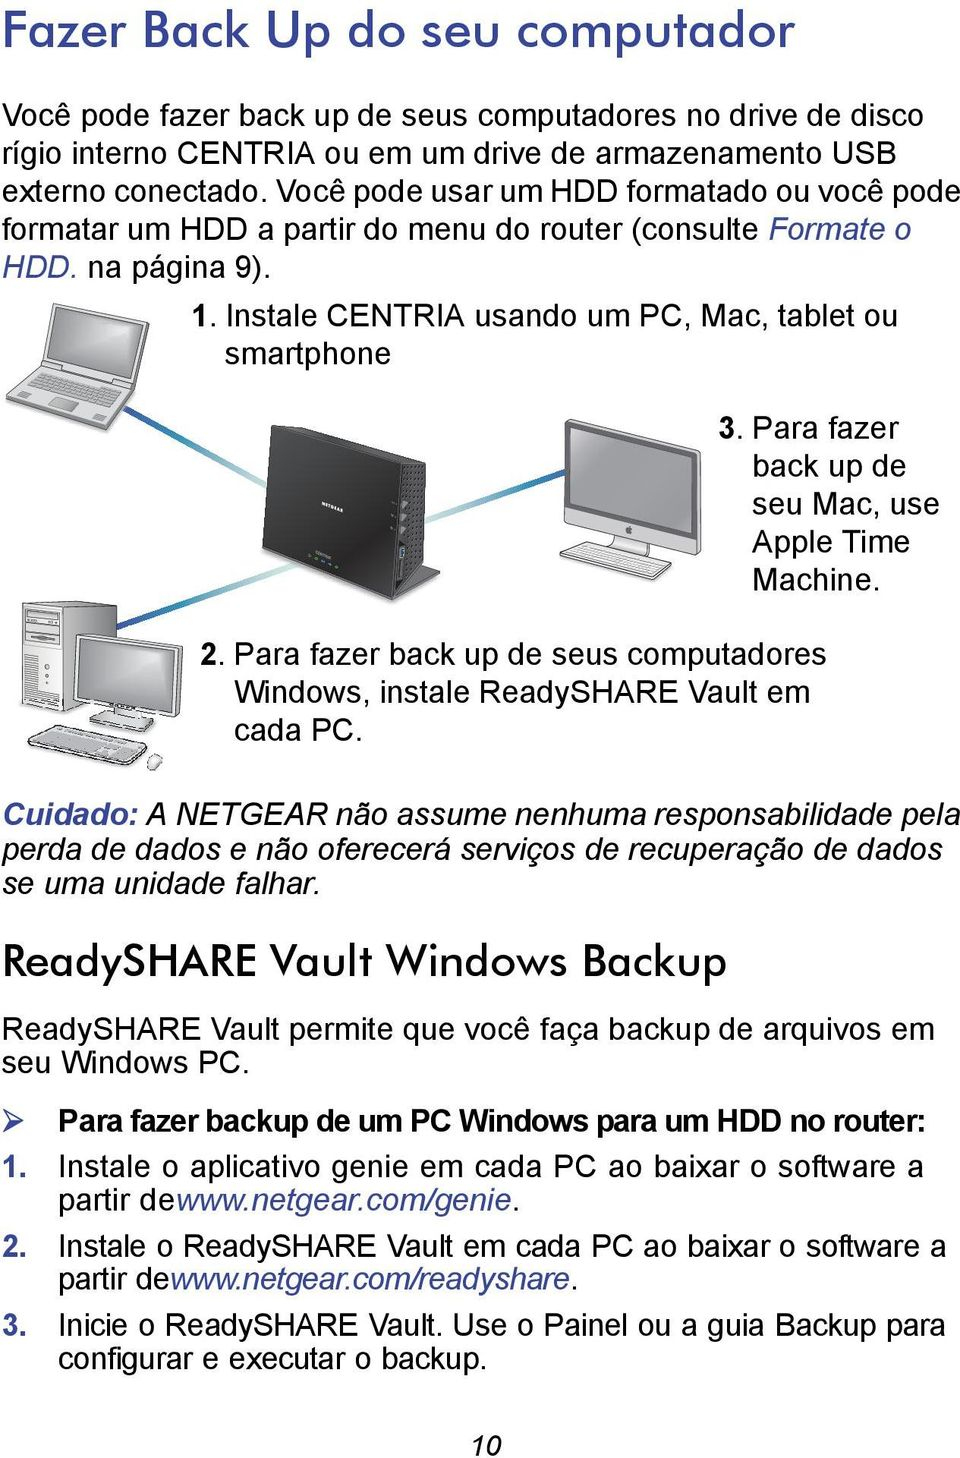 Para fazer back up de seus computadores Windows, instale ReadySHARE Vault em cada PC. 3. Para fazer back up de seu Mac, use Apple Time Machine.